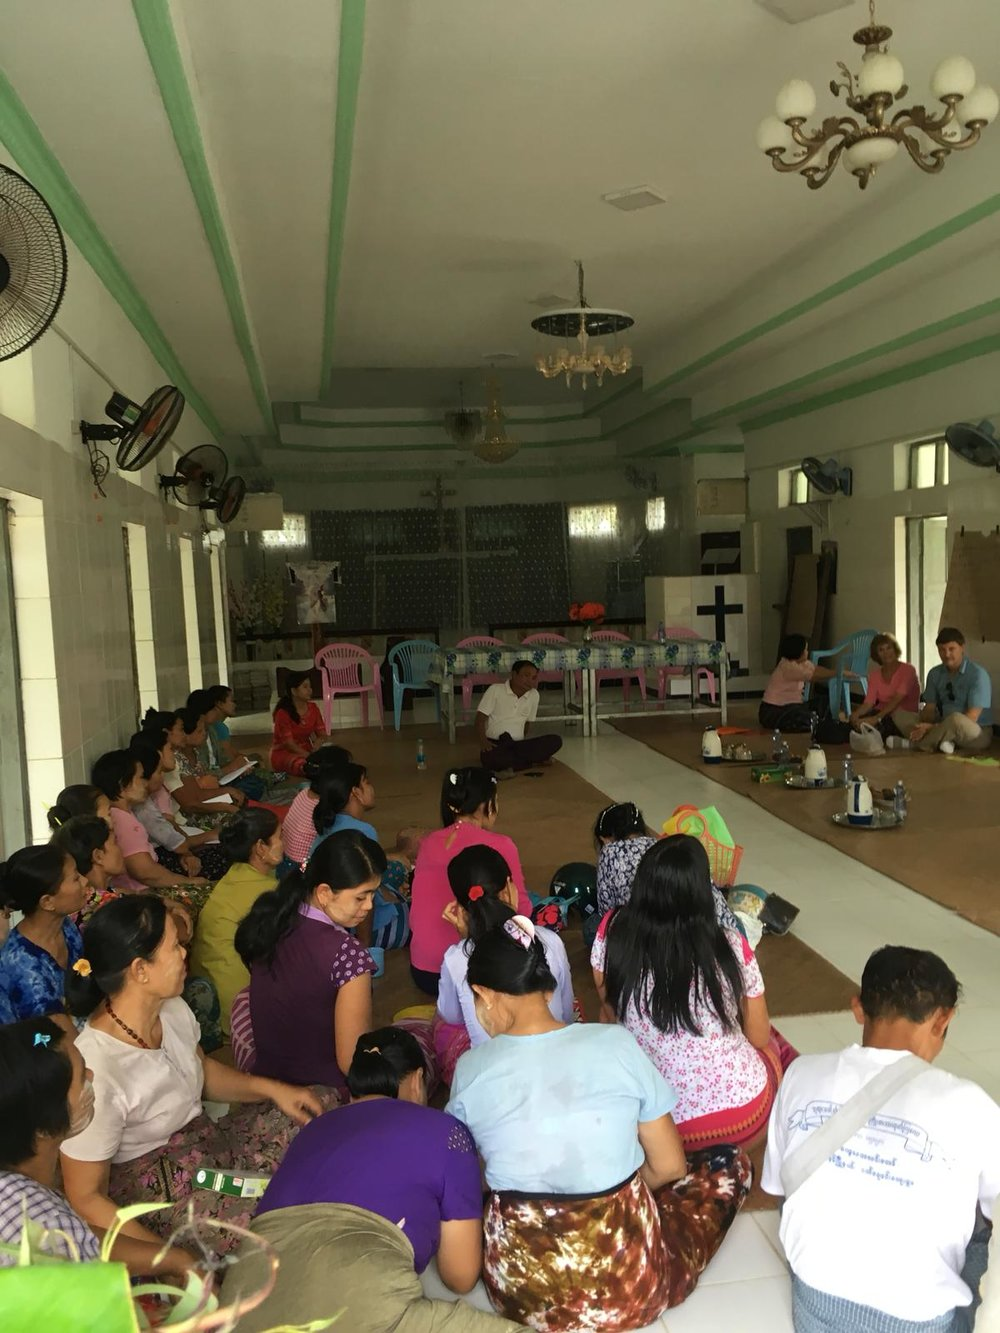 Members of a Five Talents community savings group gather in a local church. Groups like this one are growing in Myanmar through the work of Five Talents and the Mother's Union.